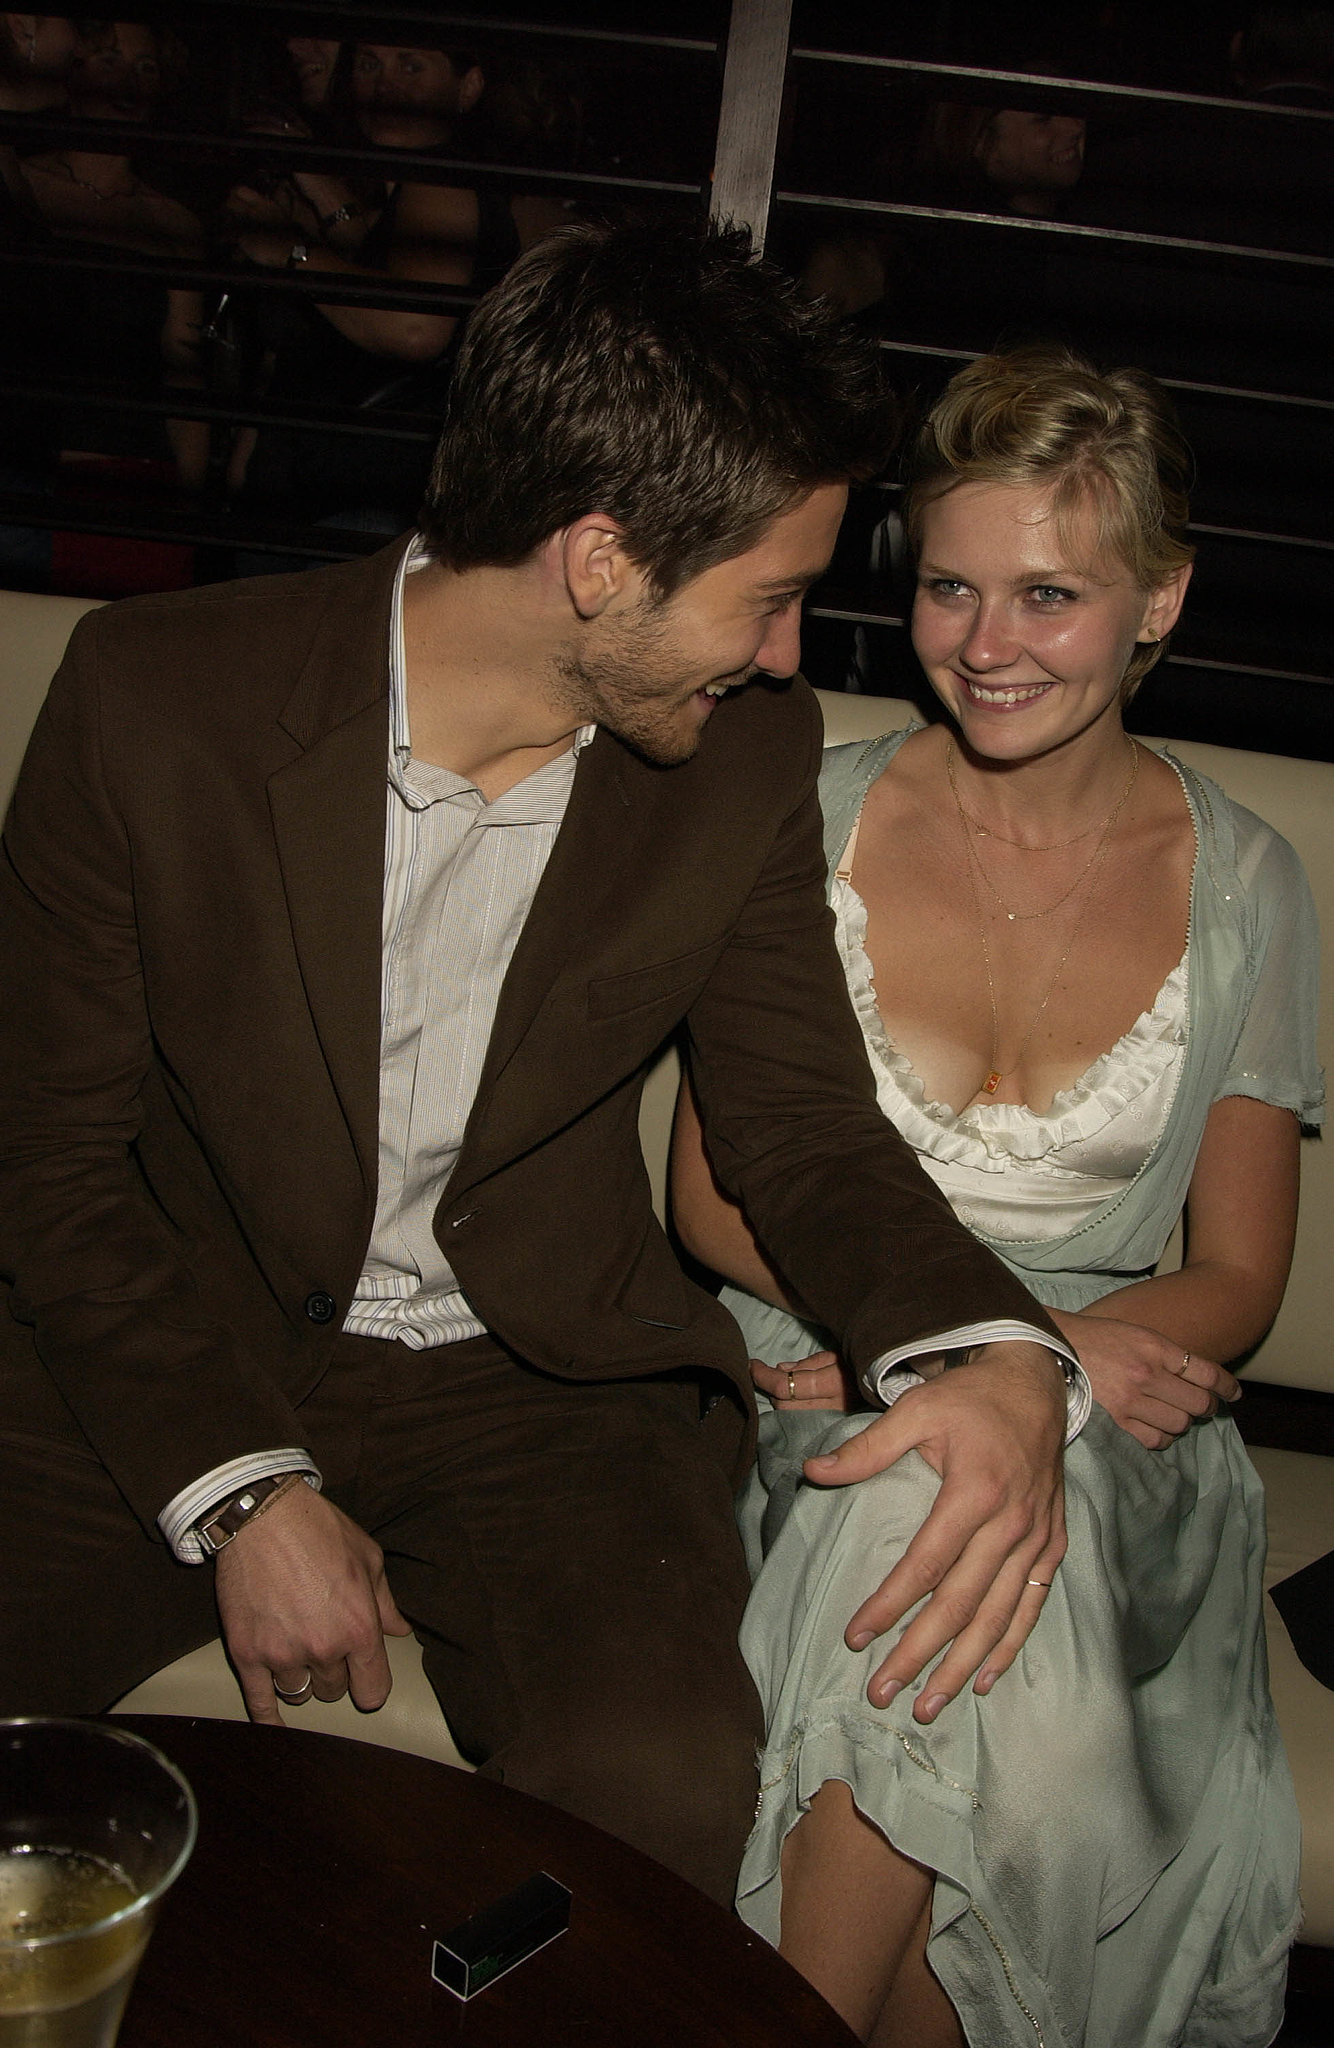 Jake and his then-girlfriend Kirsten Dunst made a cute couple at the London afterparty for The Day After Tomorrow in May 2004.